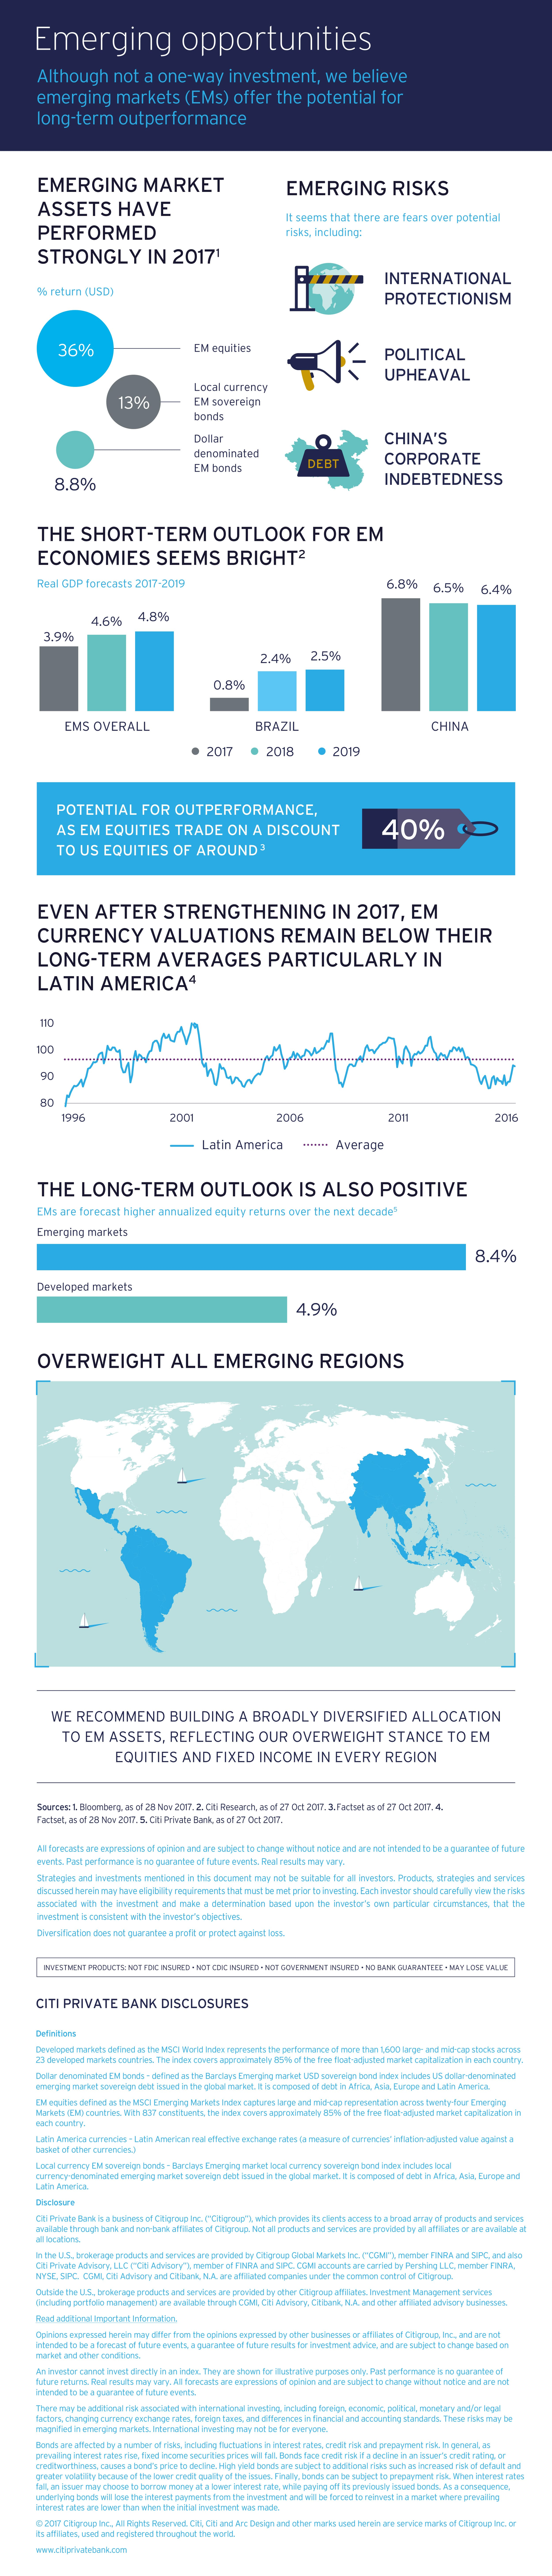 Emerging Opportunities Infographic